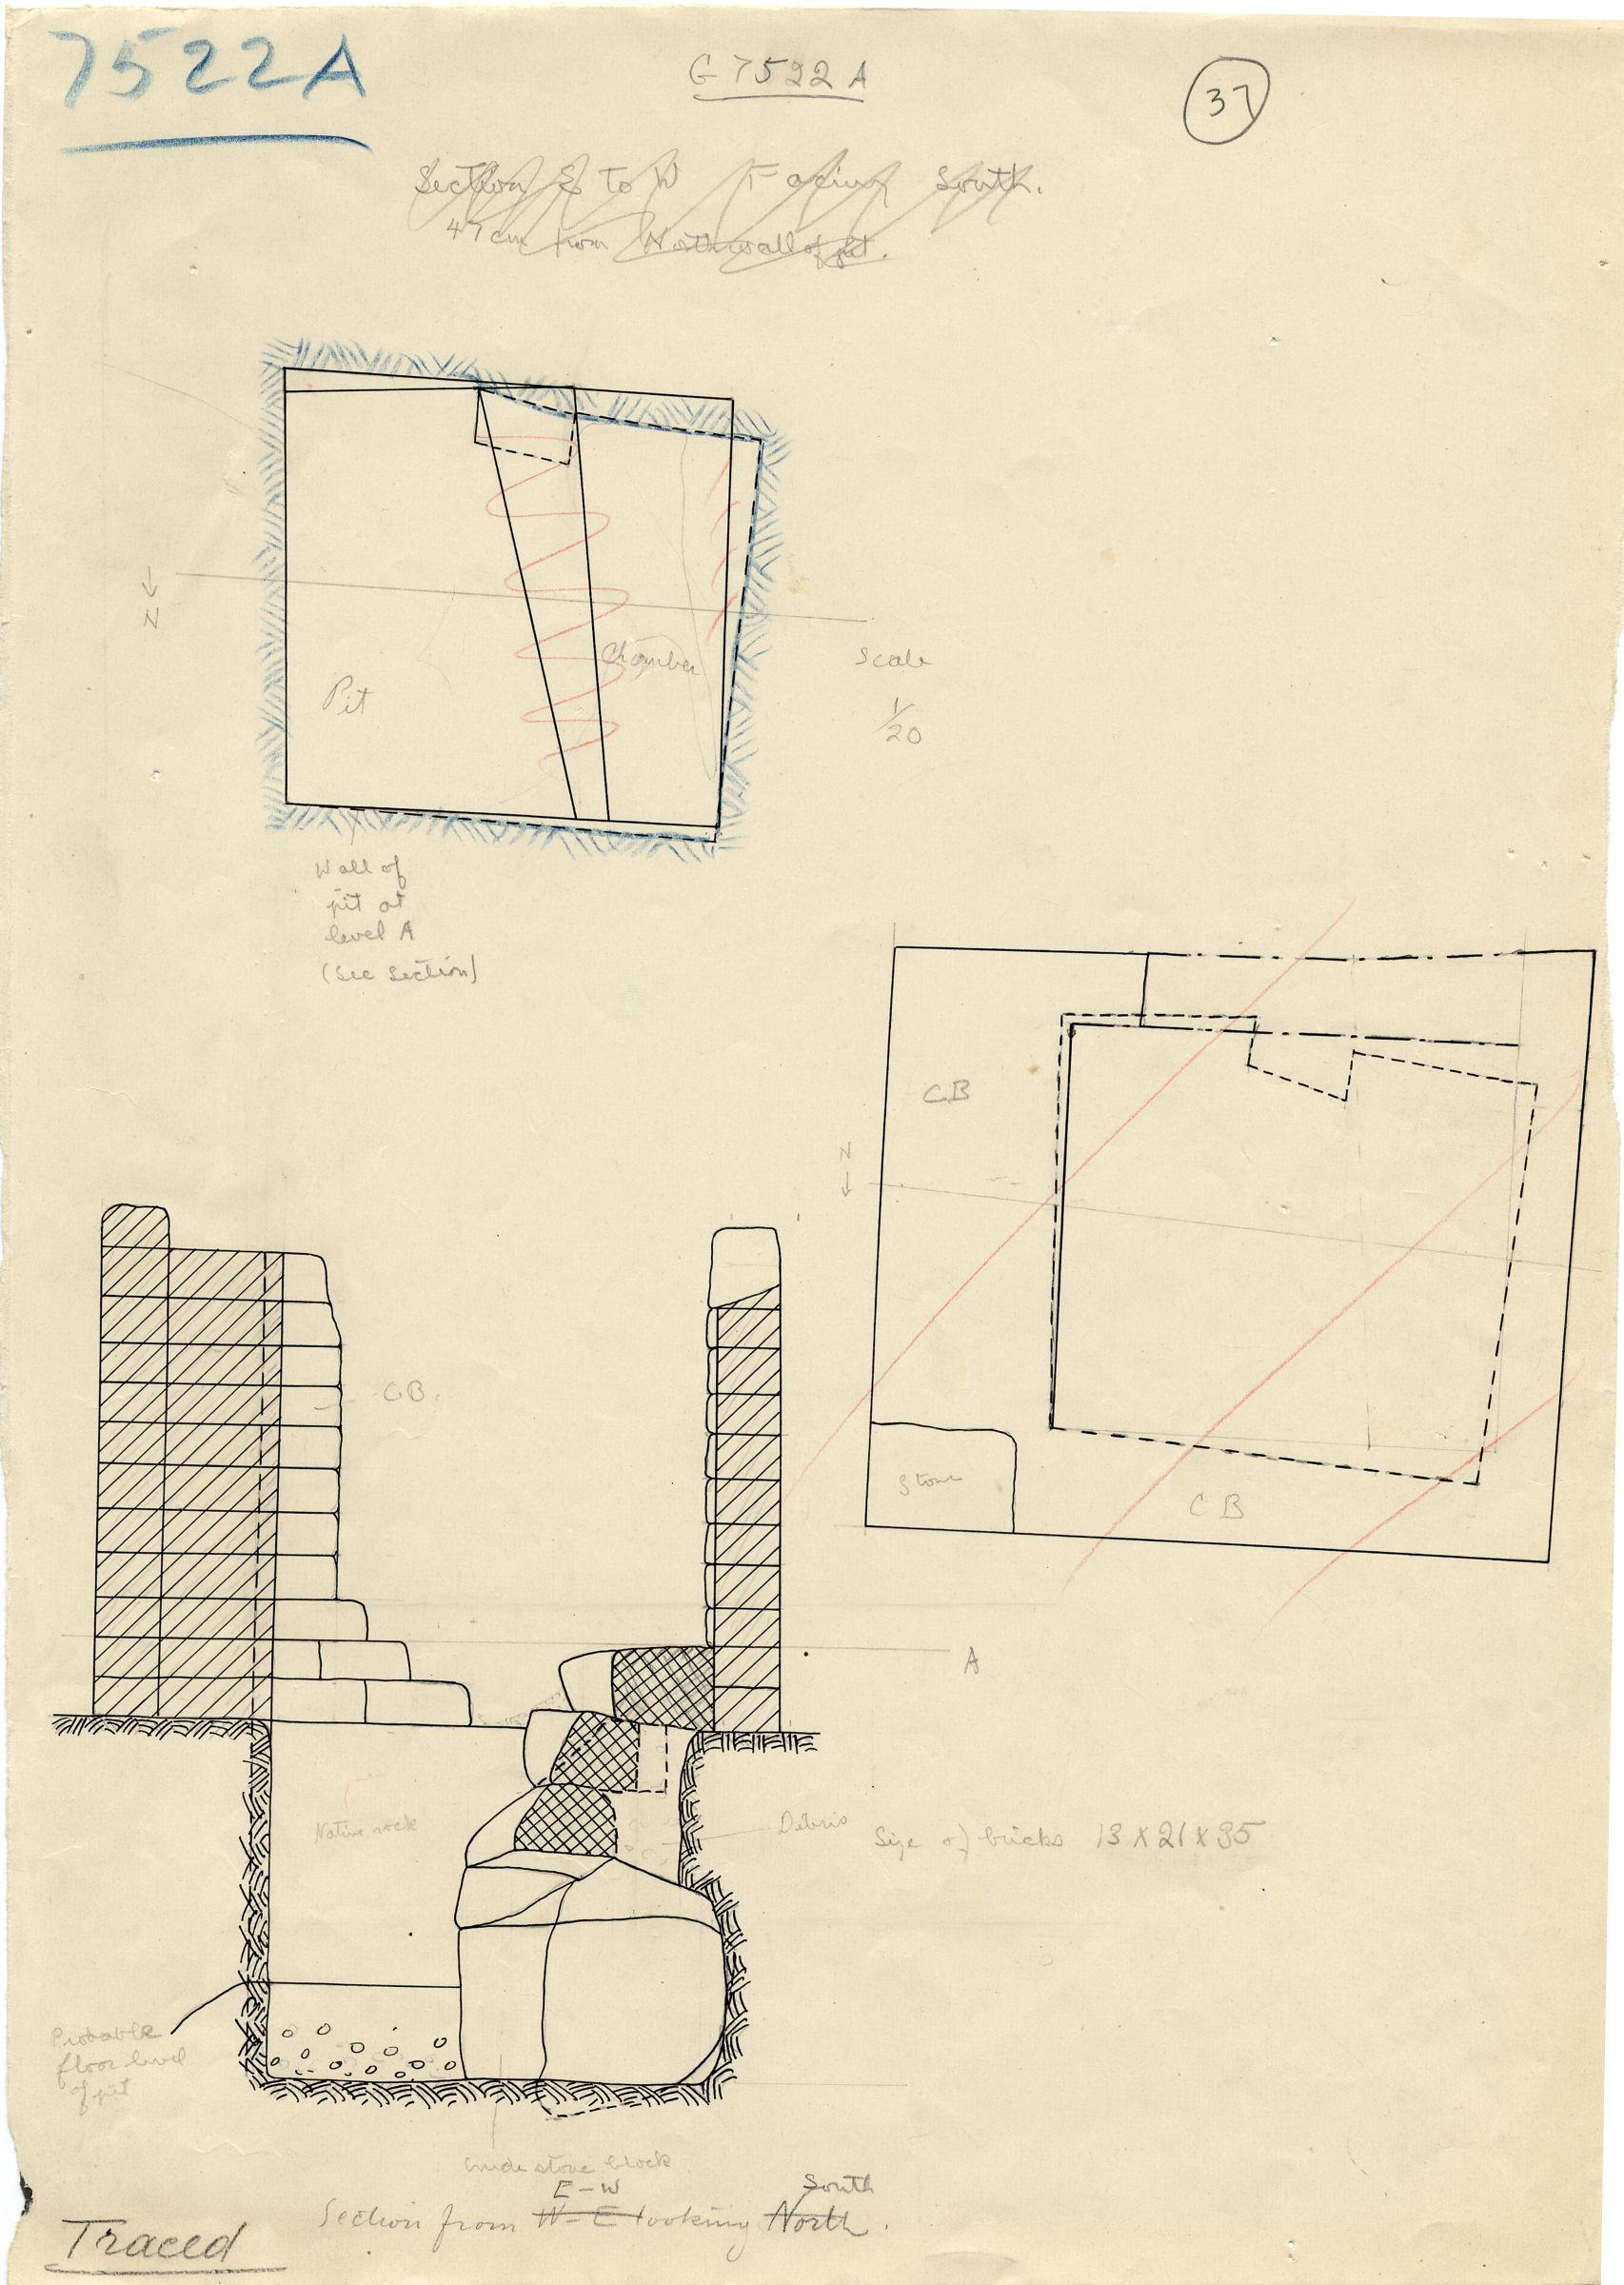 Maps and plans: G 7522, Shaft A